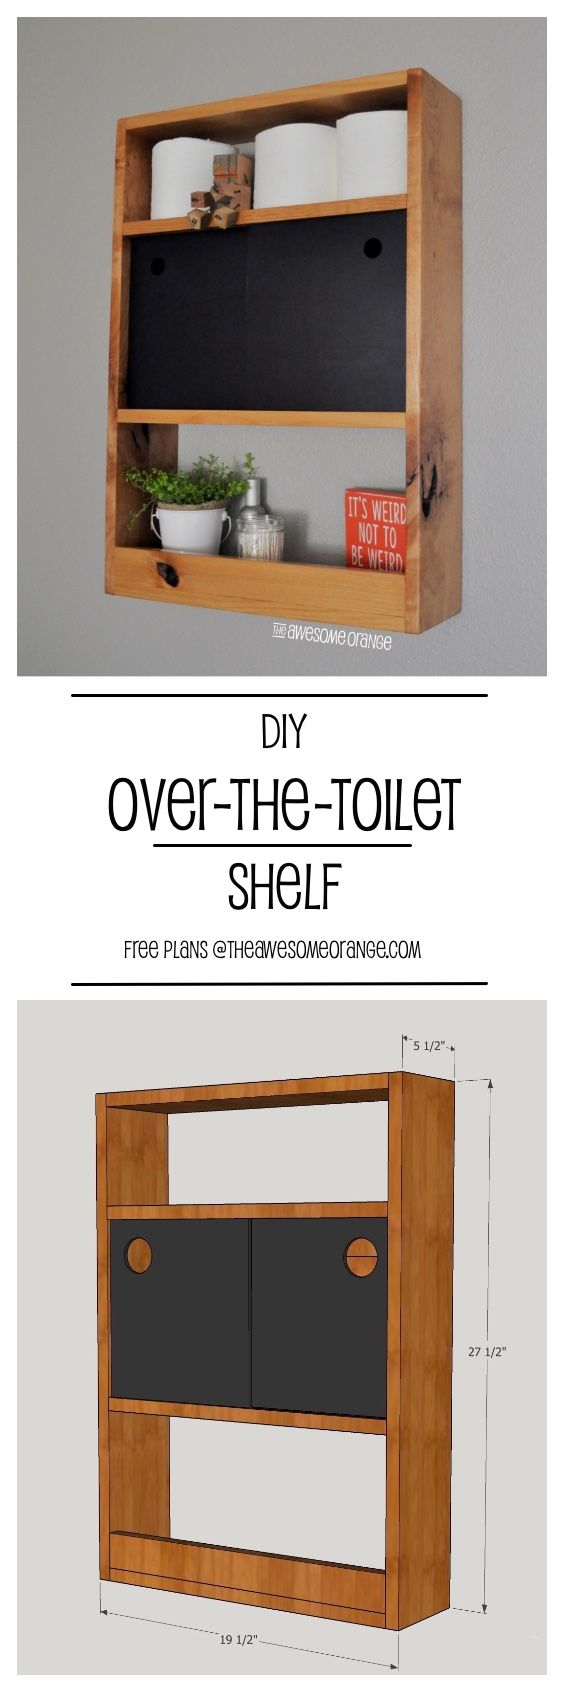 DIY Over The Toilet Shelf FREE Plans from wwwtheAwesomeOrangecom